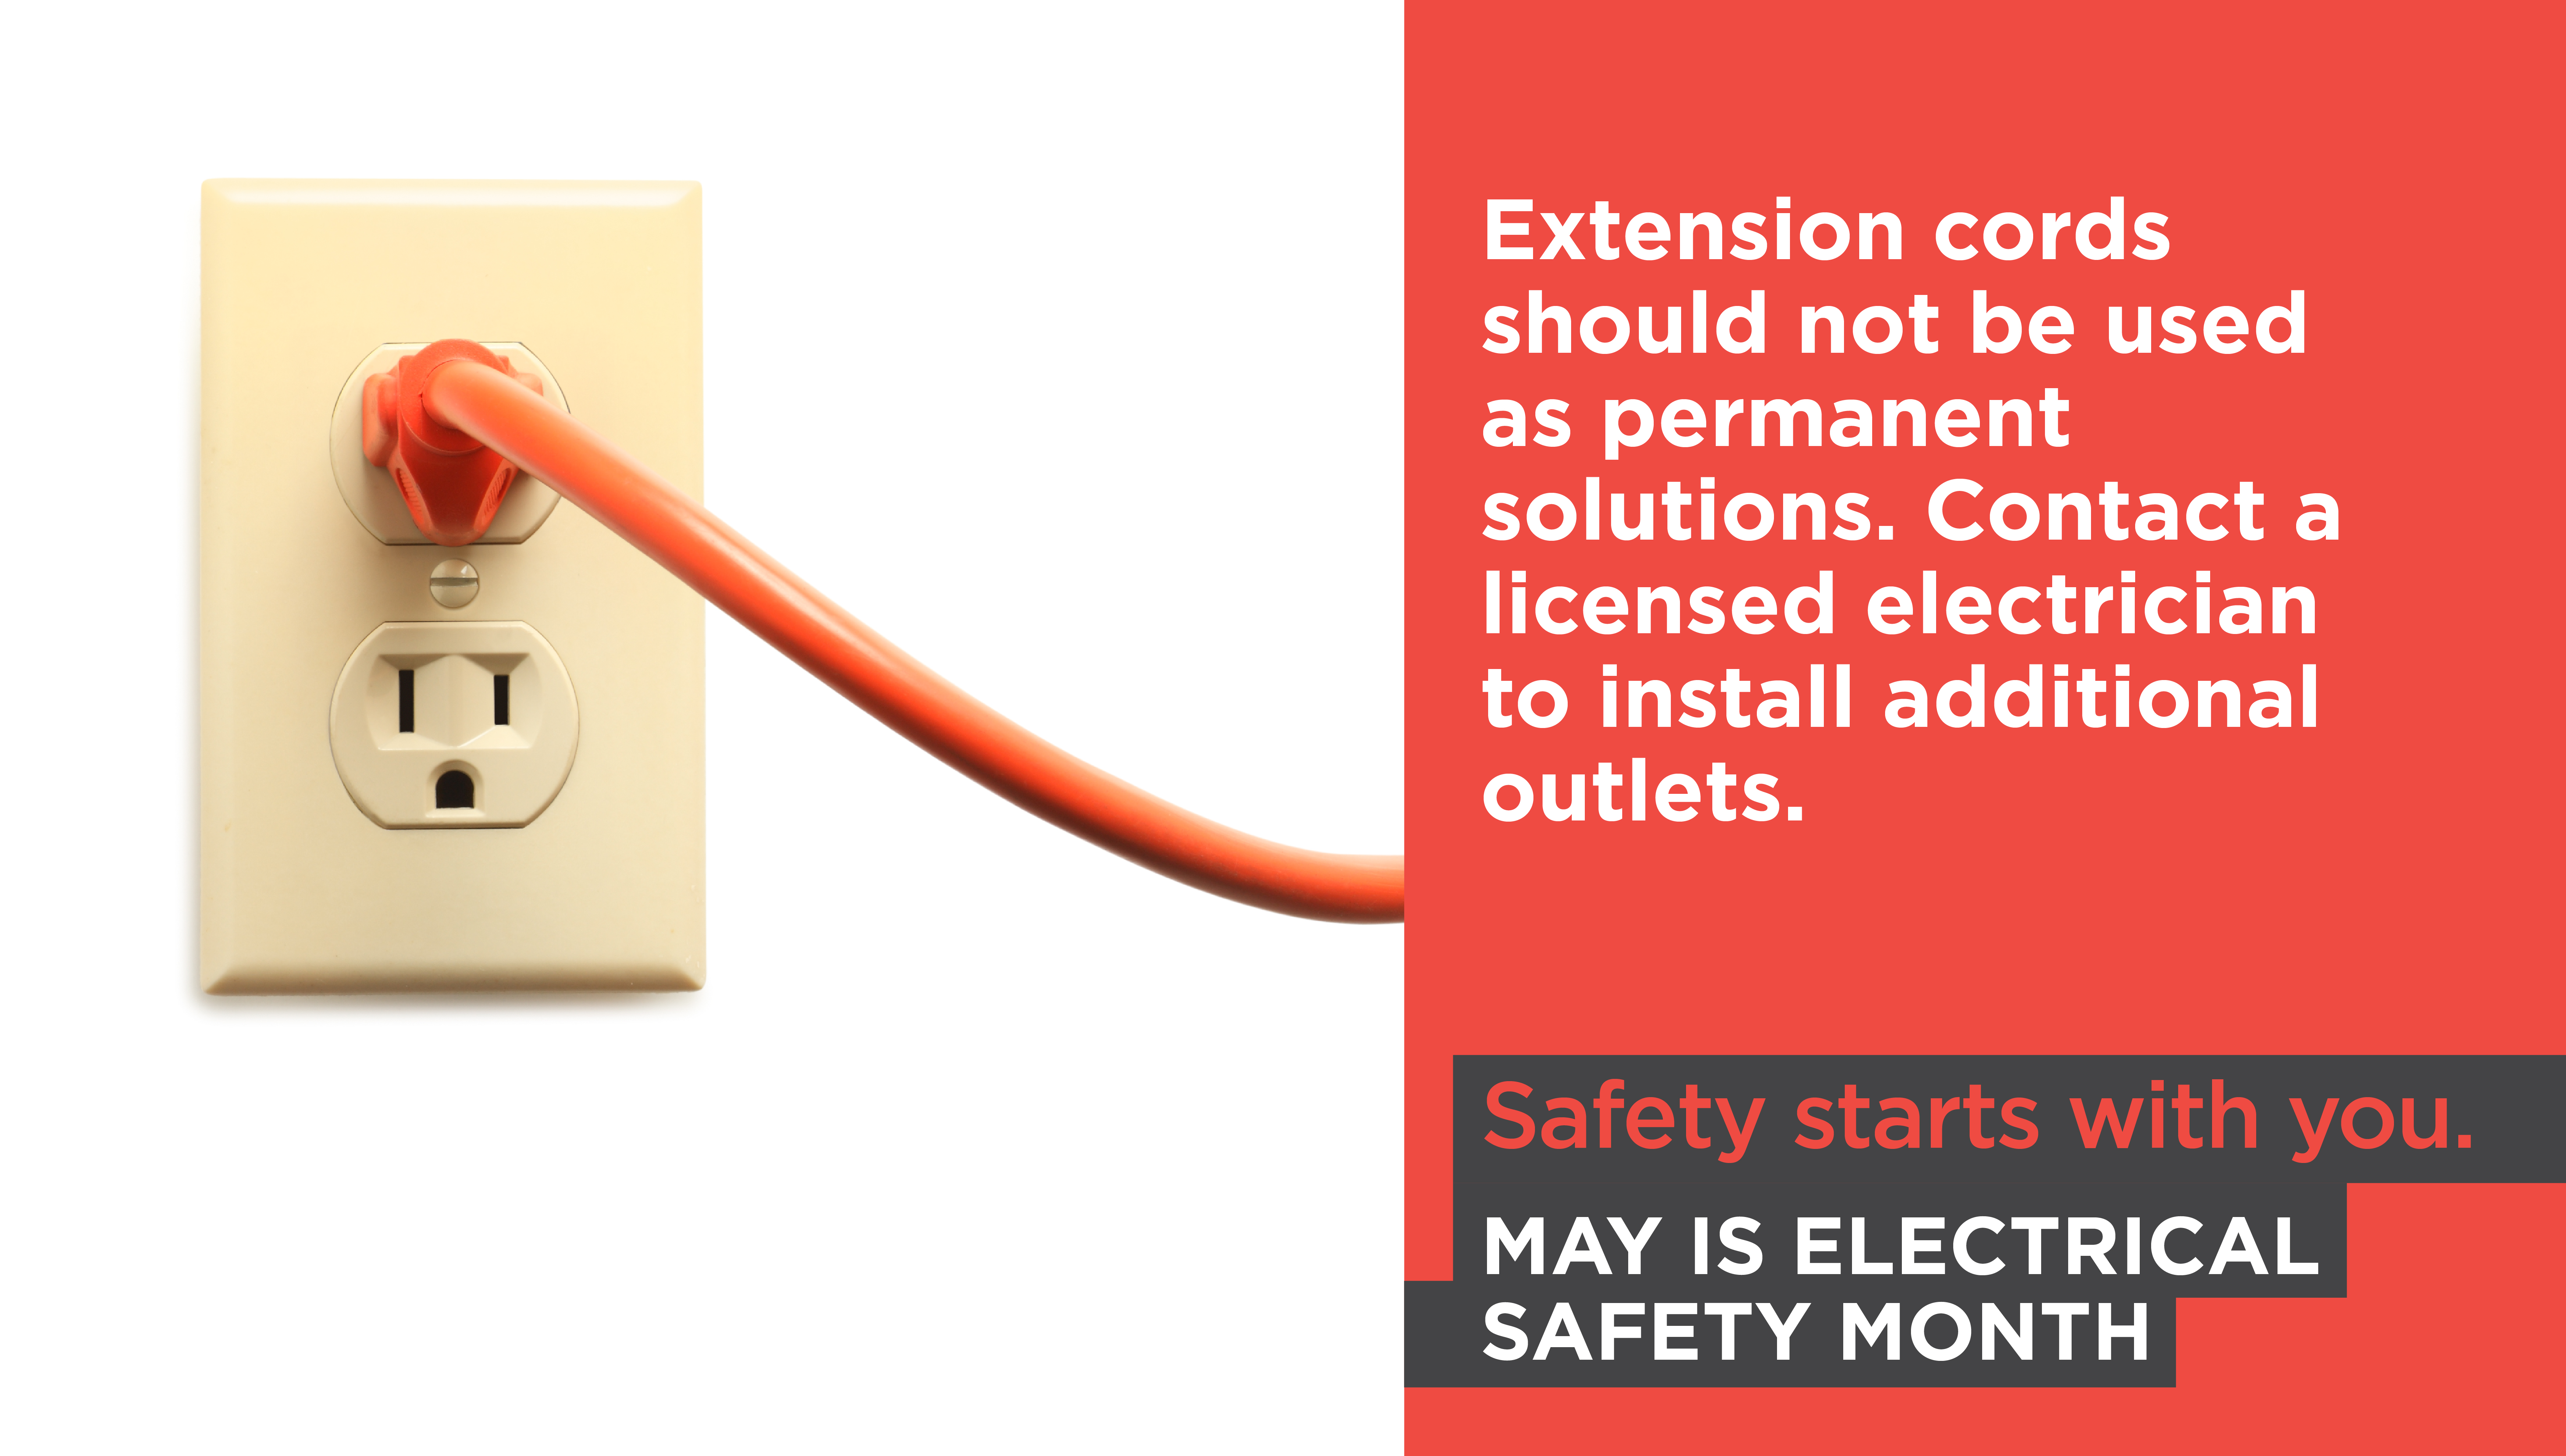 2019_05_DS_SOCIAL_ElectricalSafetyMonth_SocialMediaGraphic4.jpg